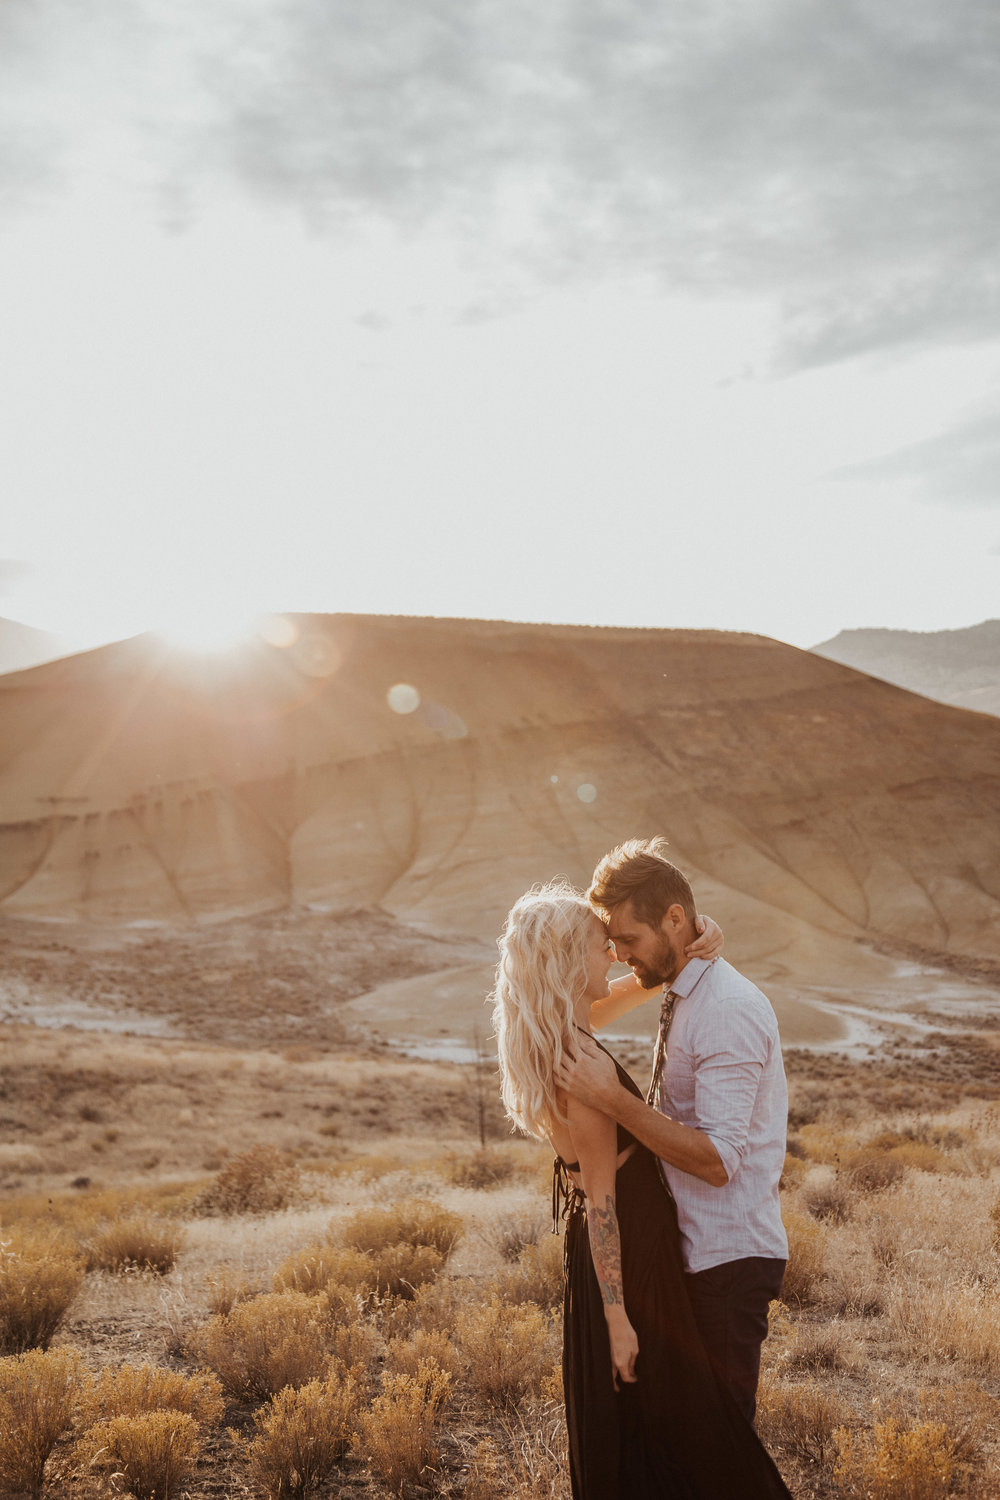 August-muse-images-smith-rock-elopement-oregon-bri-dylan-7.jpg